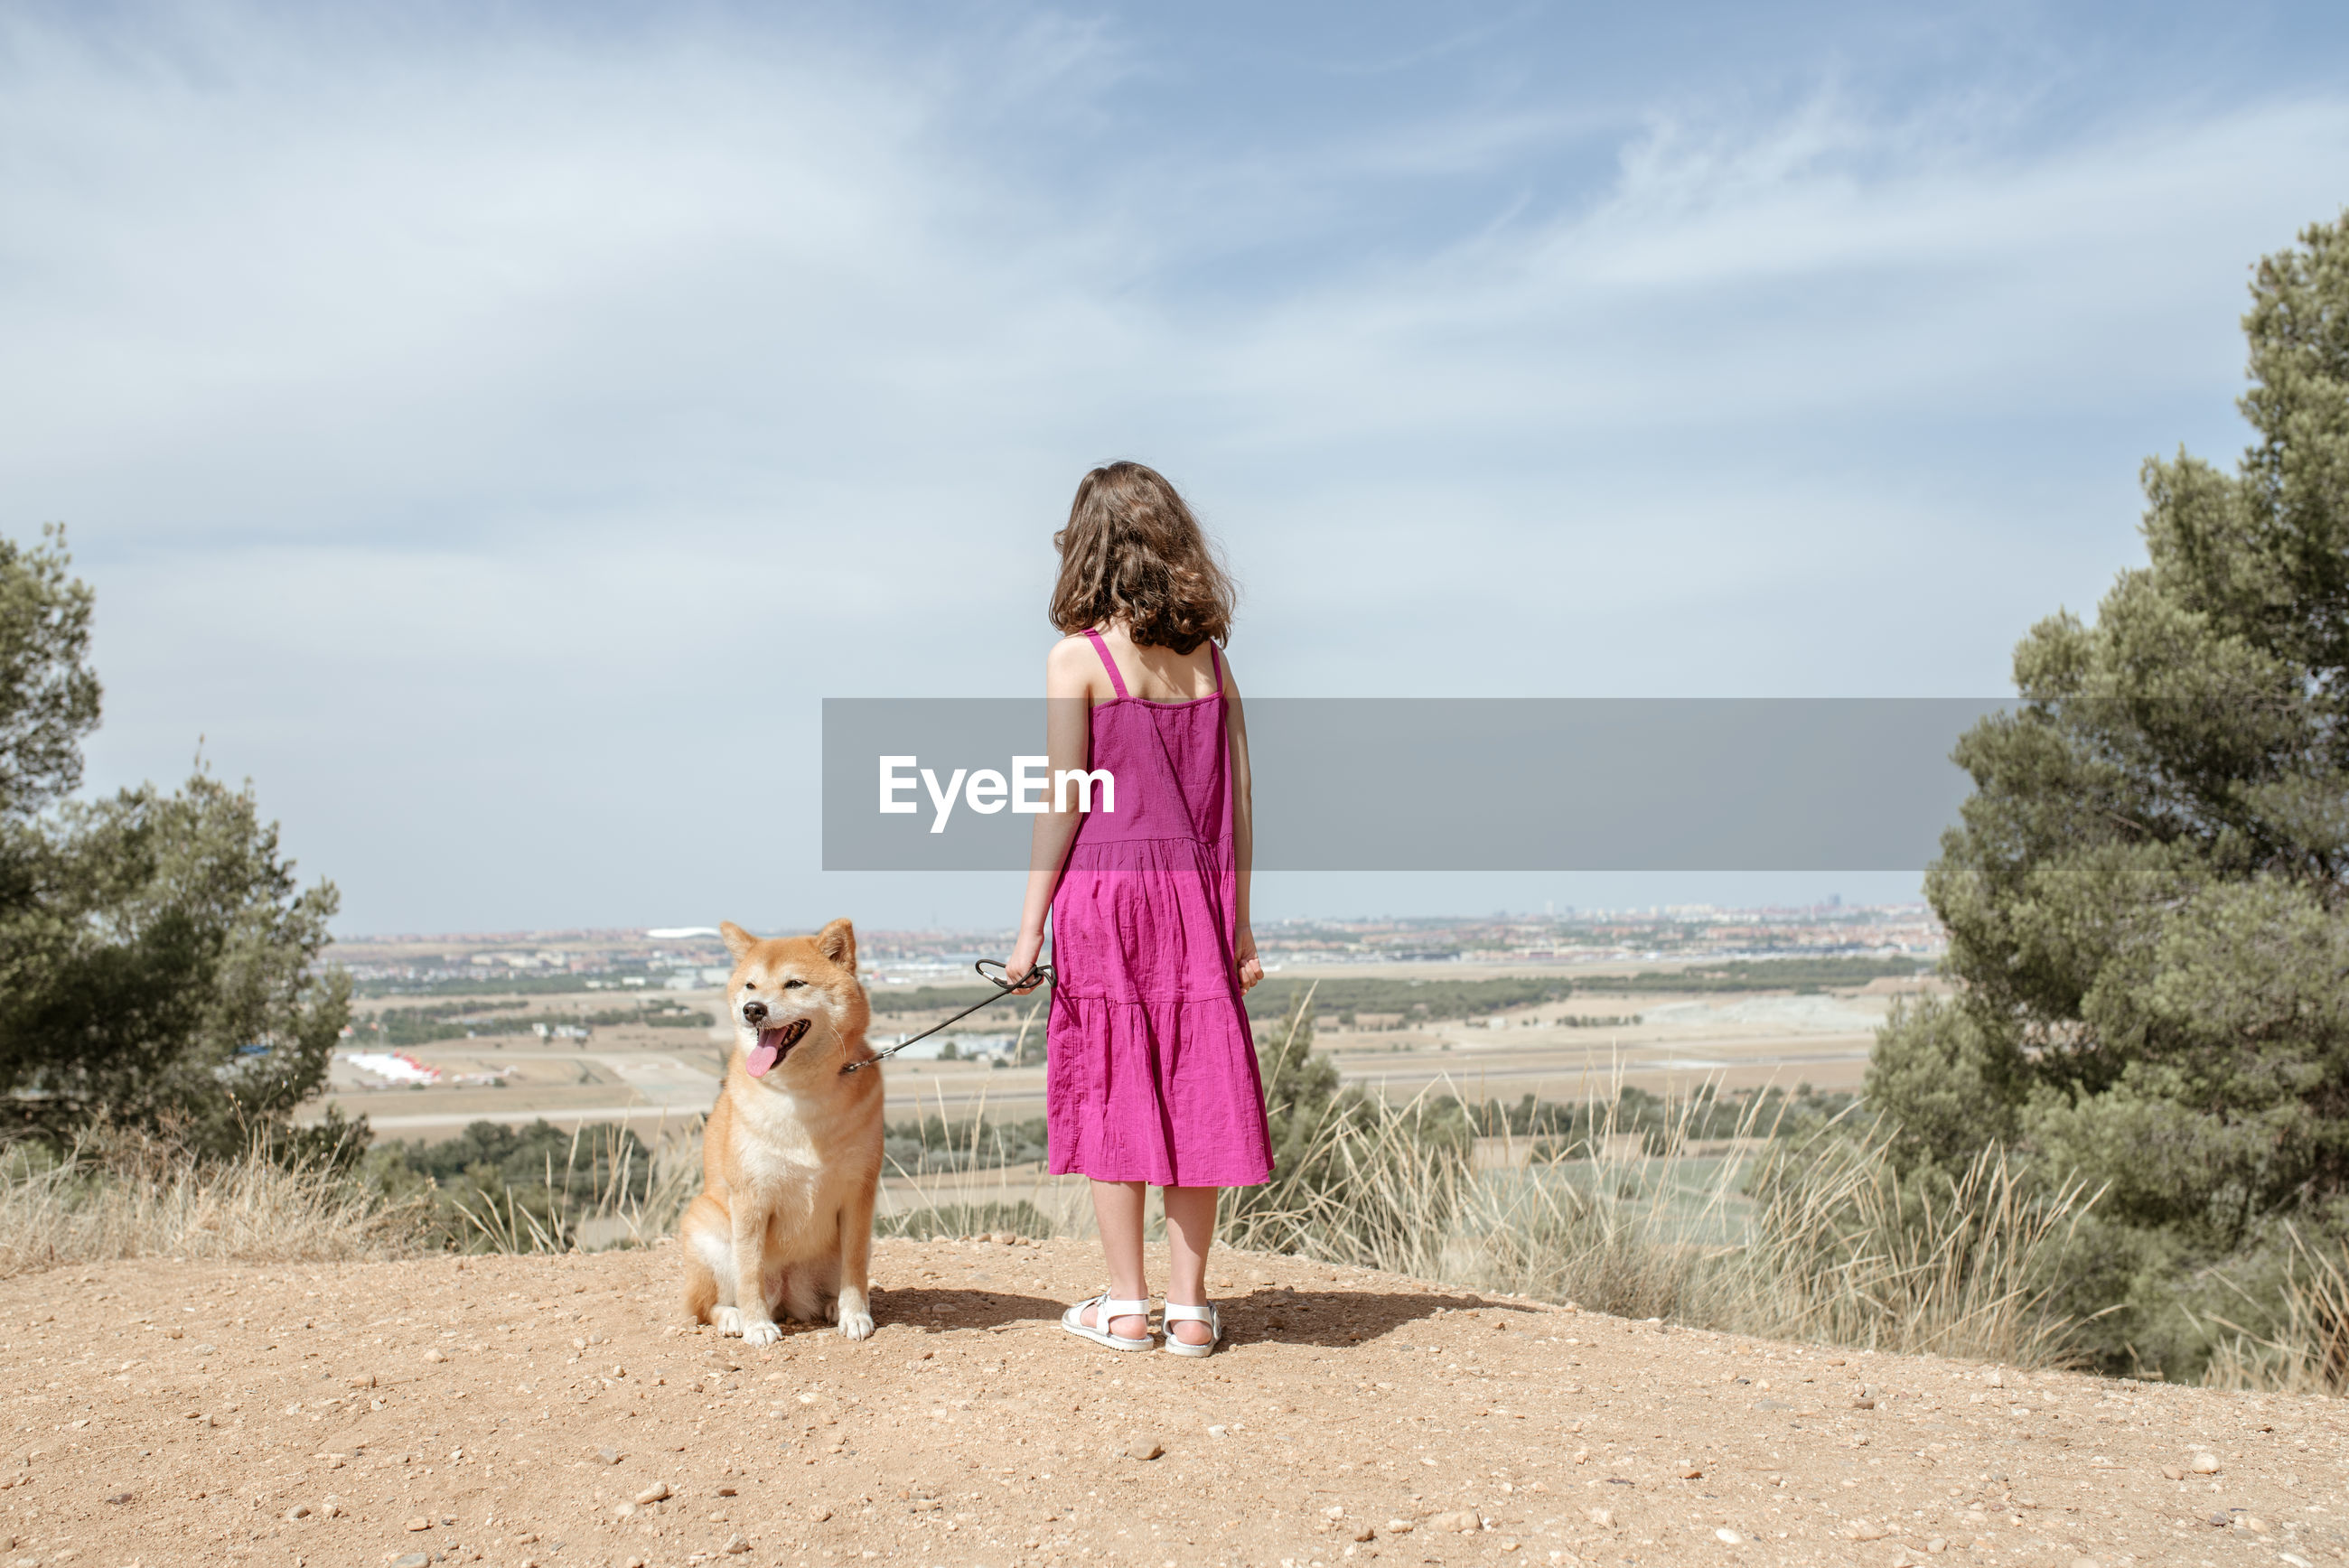 REAR VIEW OF WOMAN WITH DOG STANDING ON LAND